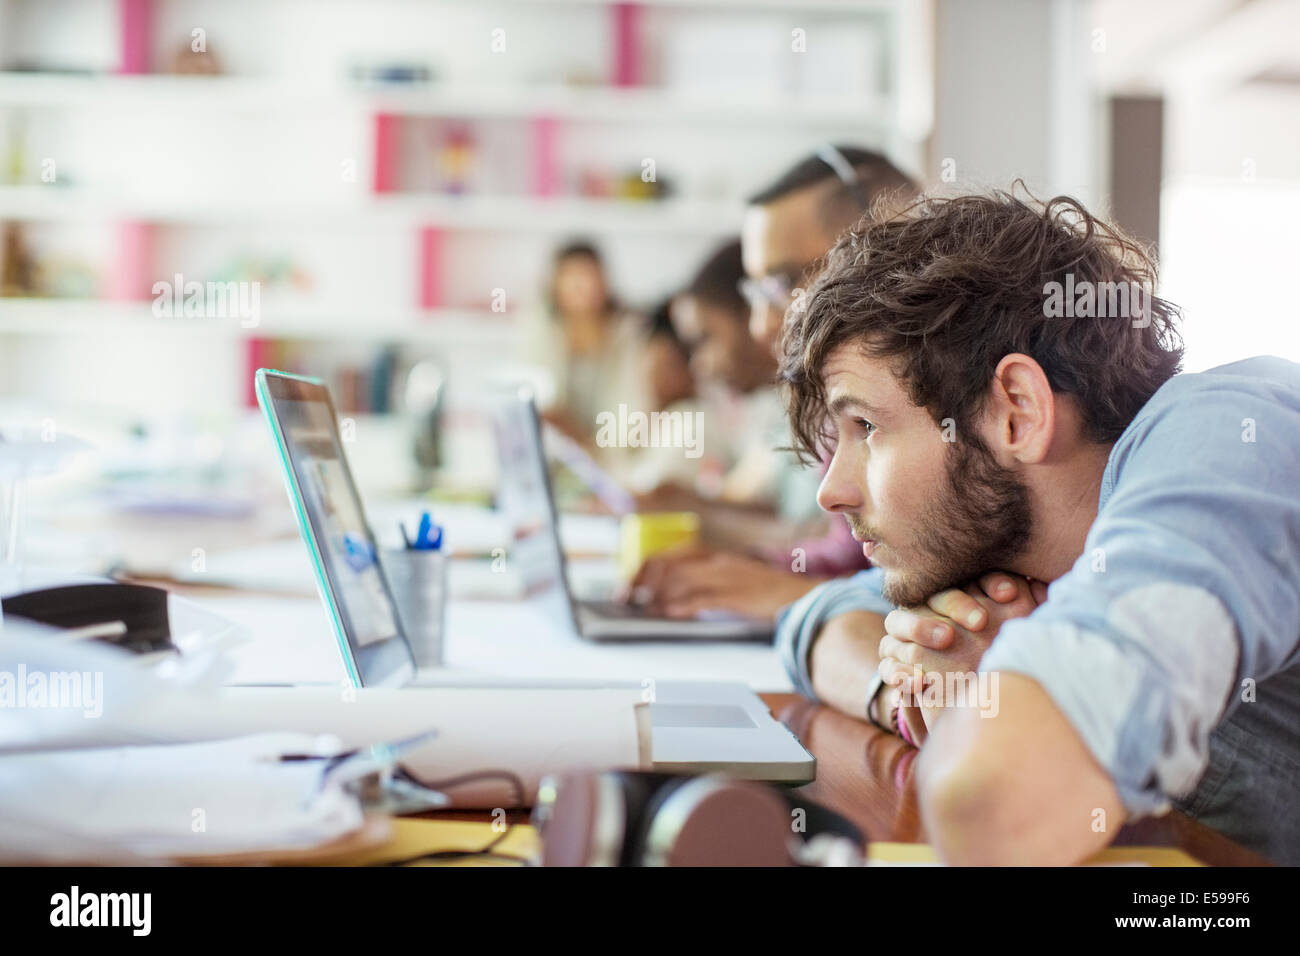 People working in office - Stock Image